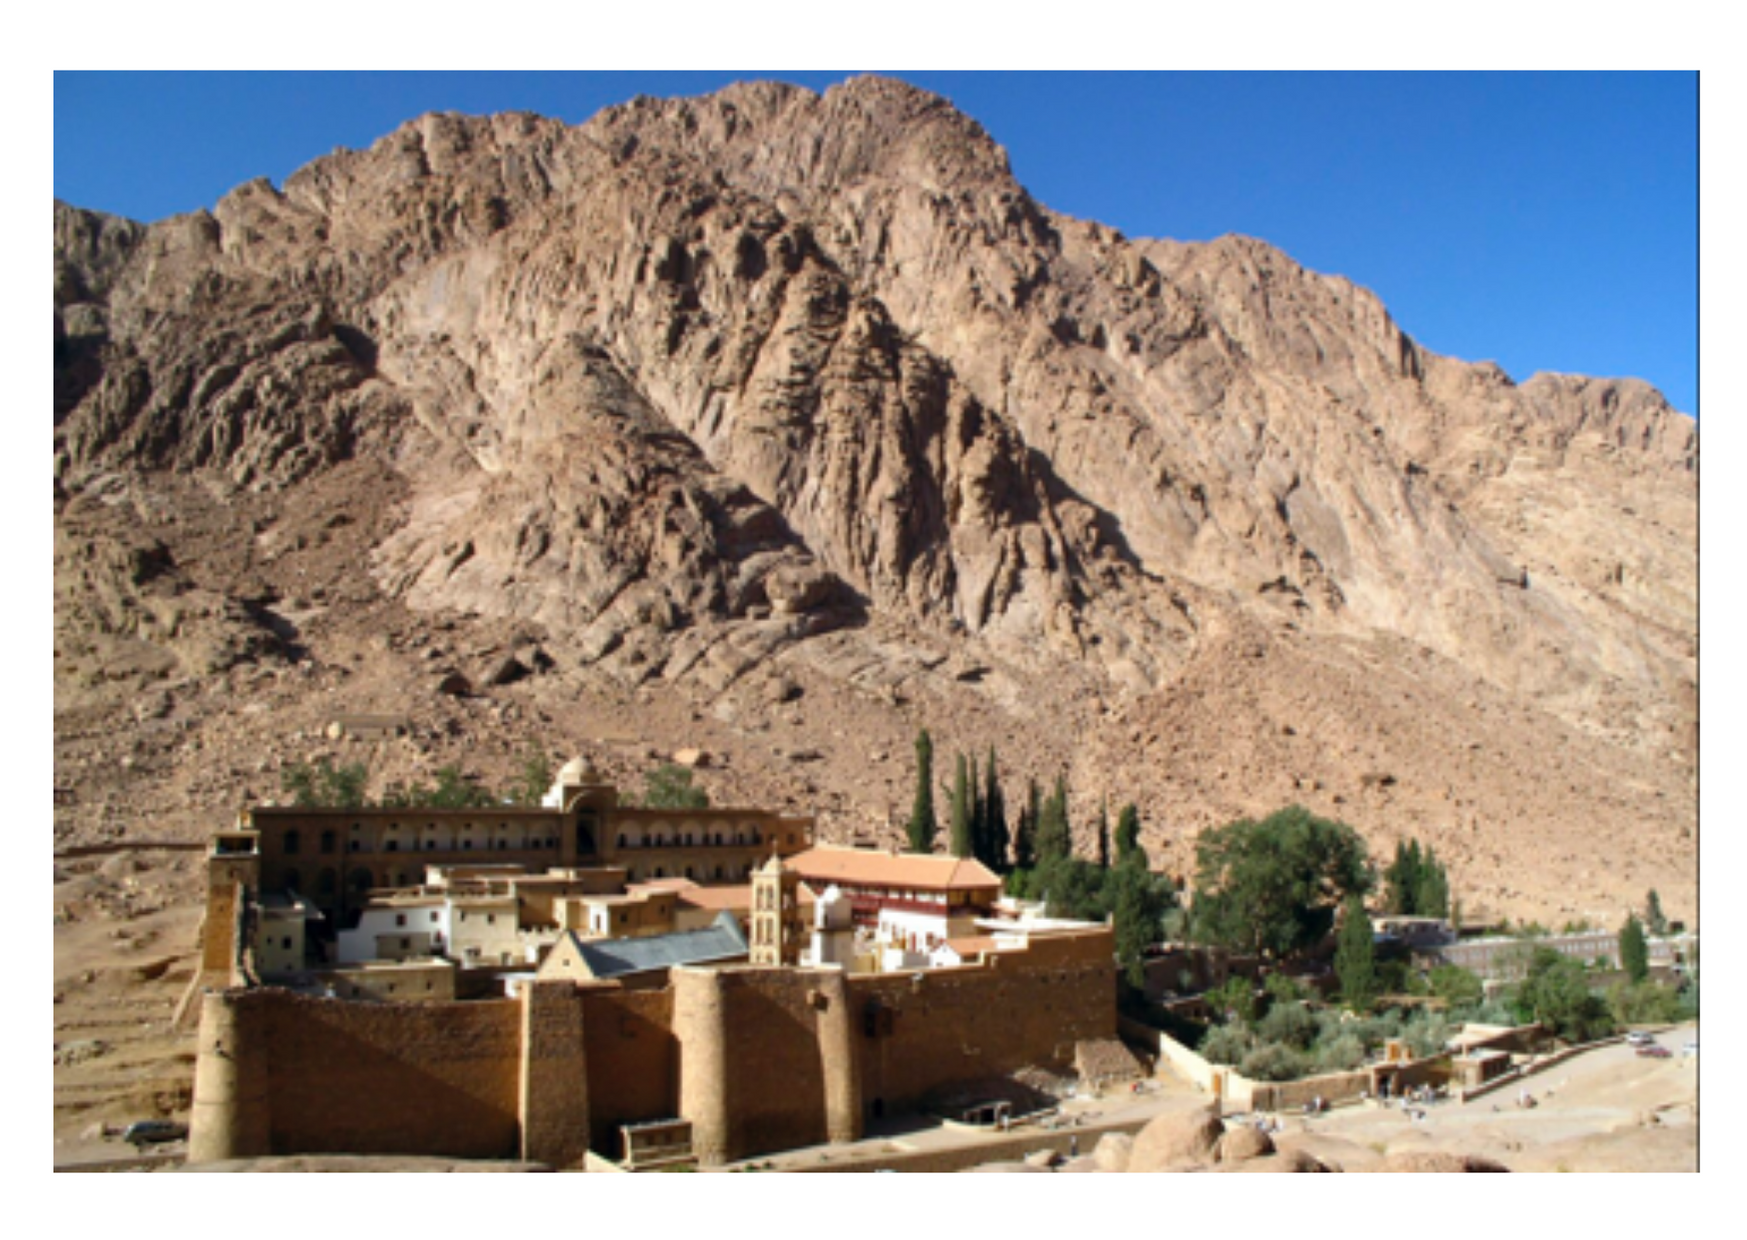 St Catherine's Monastery with Willow Peak in the background.